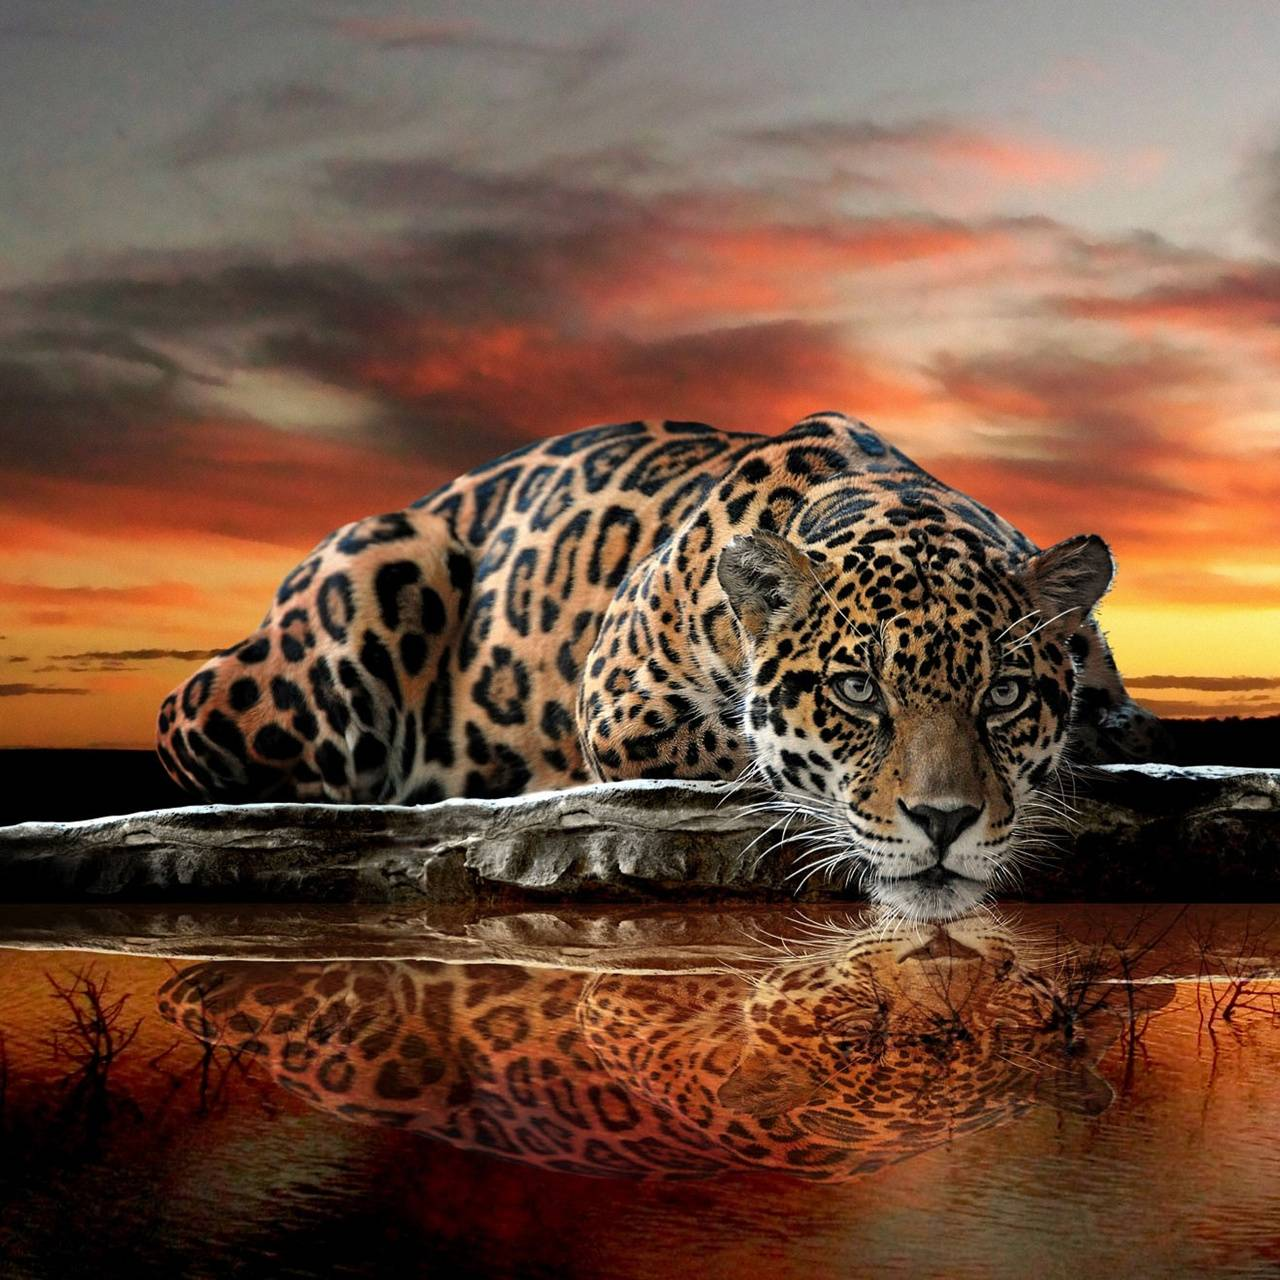 Abstract Jaguar Wallpaper By Dudeski1988